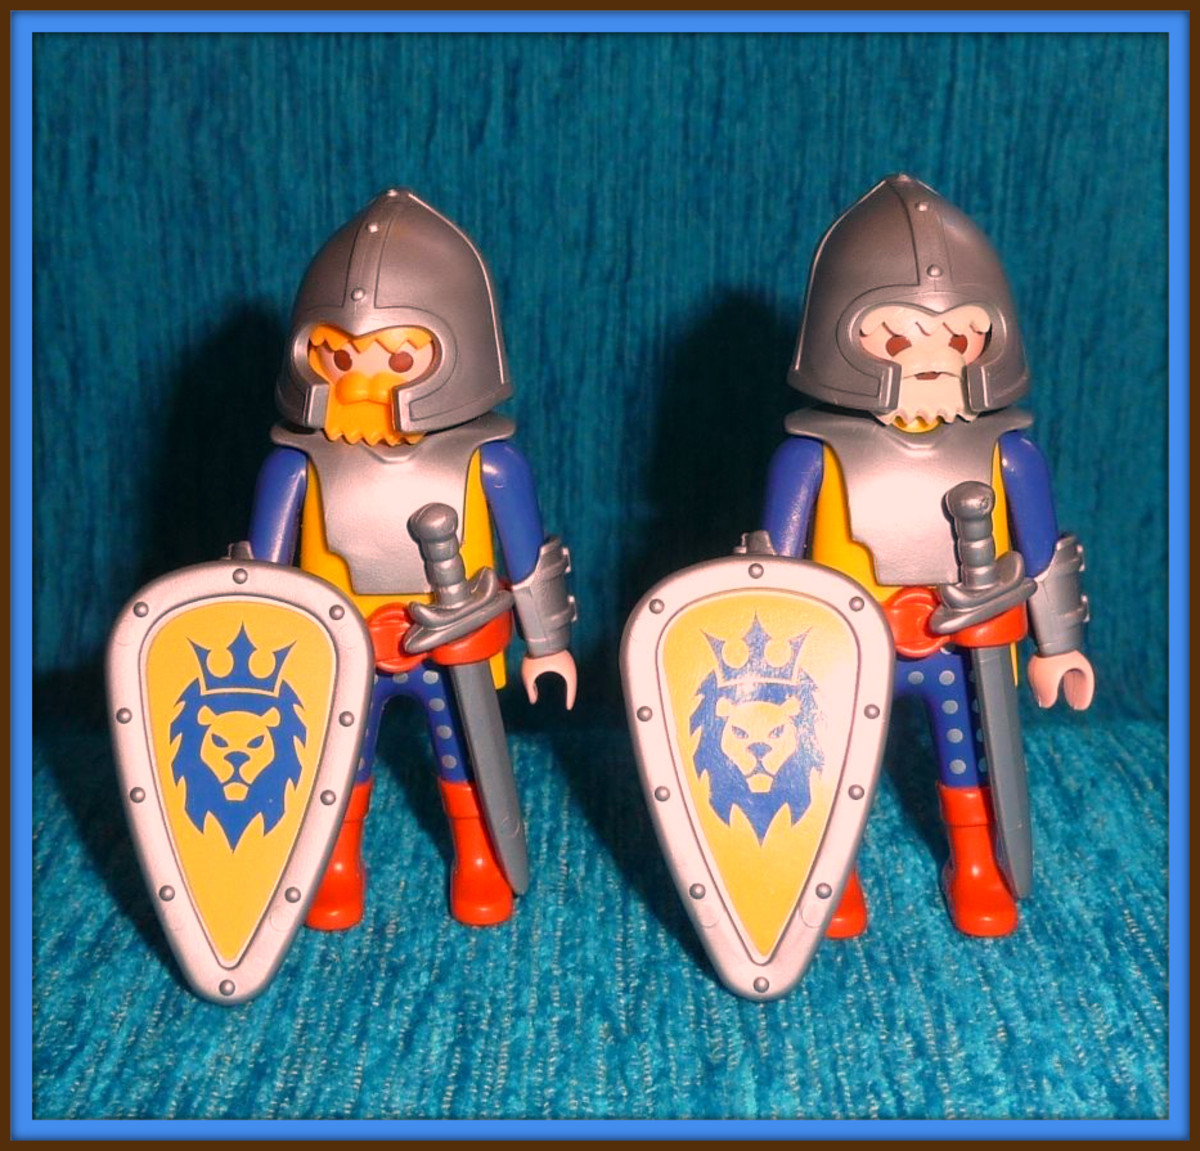 Playmobil Medieval Knights come in a huge selection, and each year new ones are made to replace ones that are no longer in production.